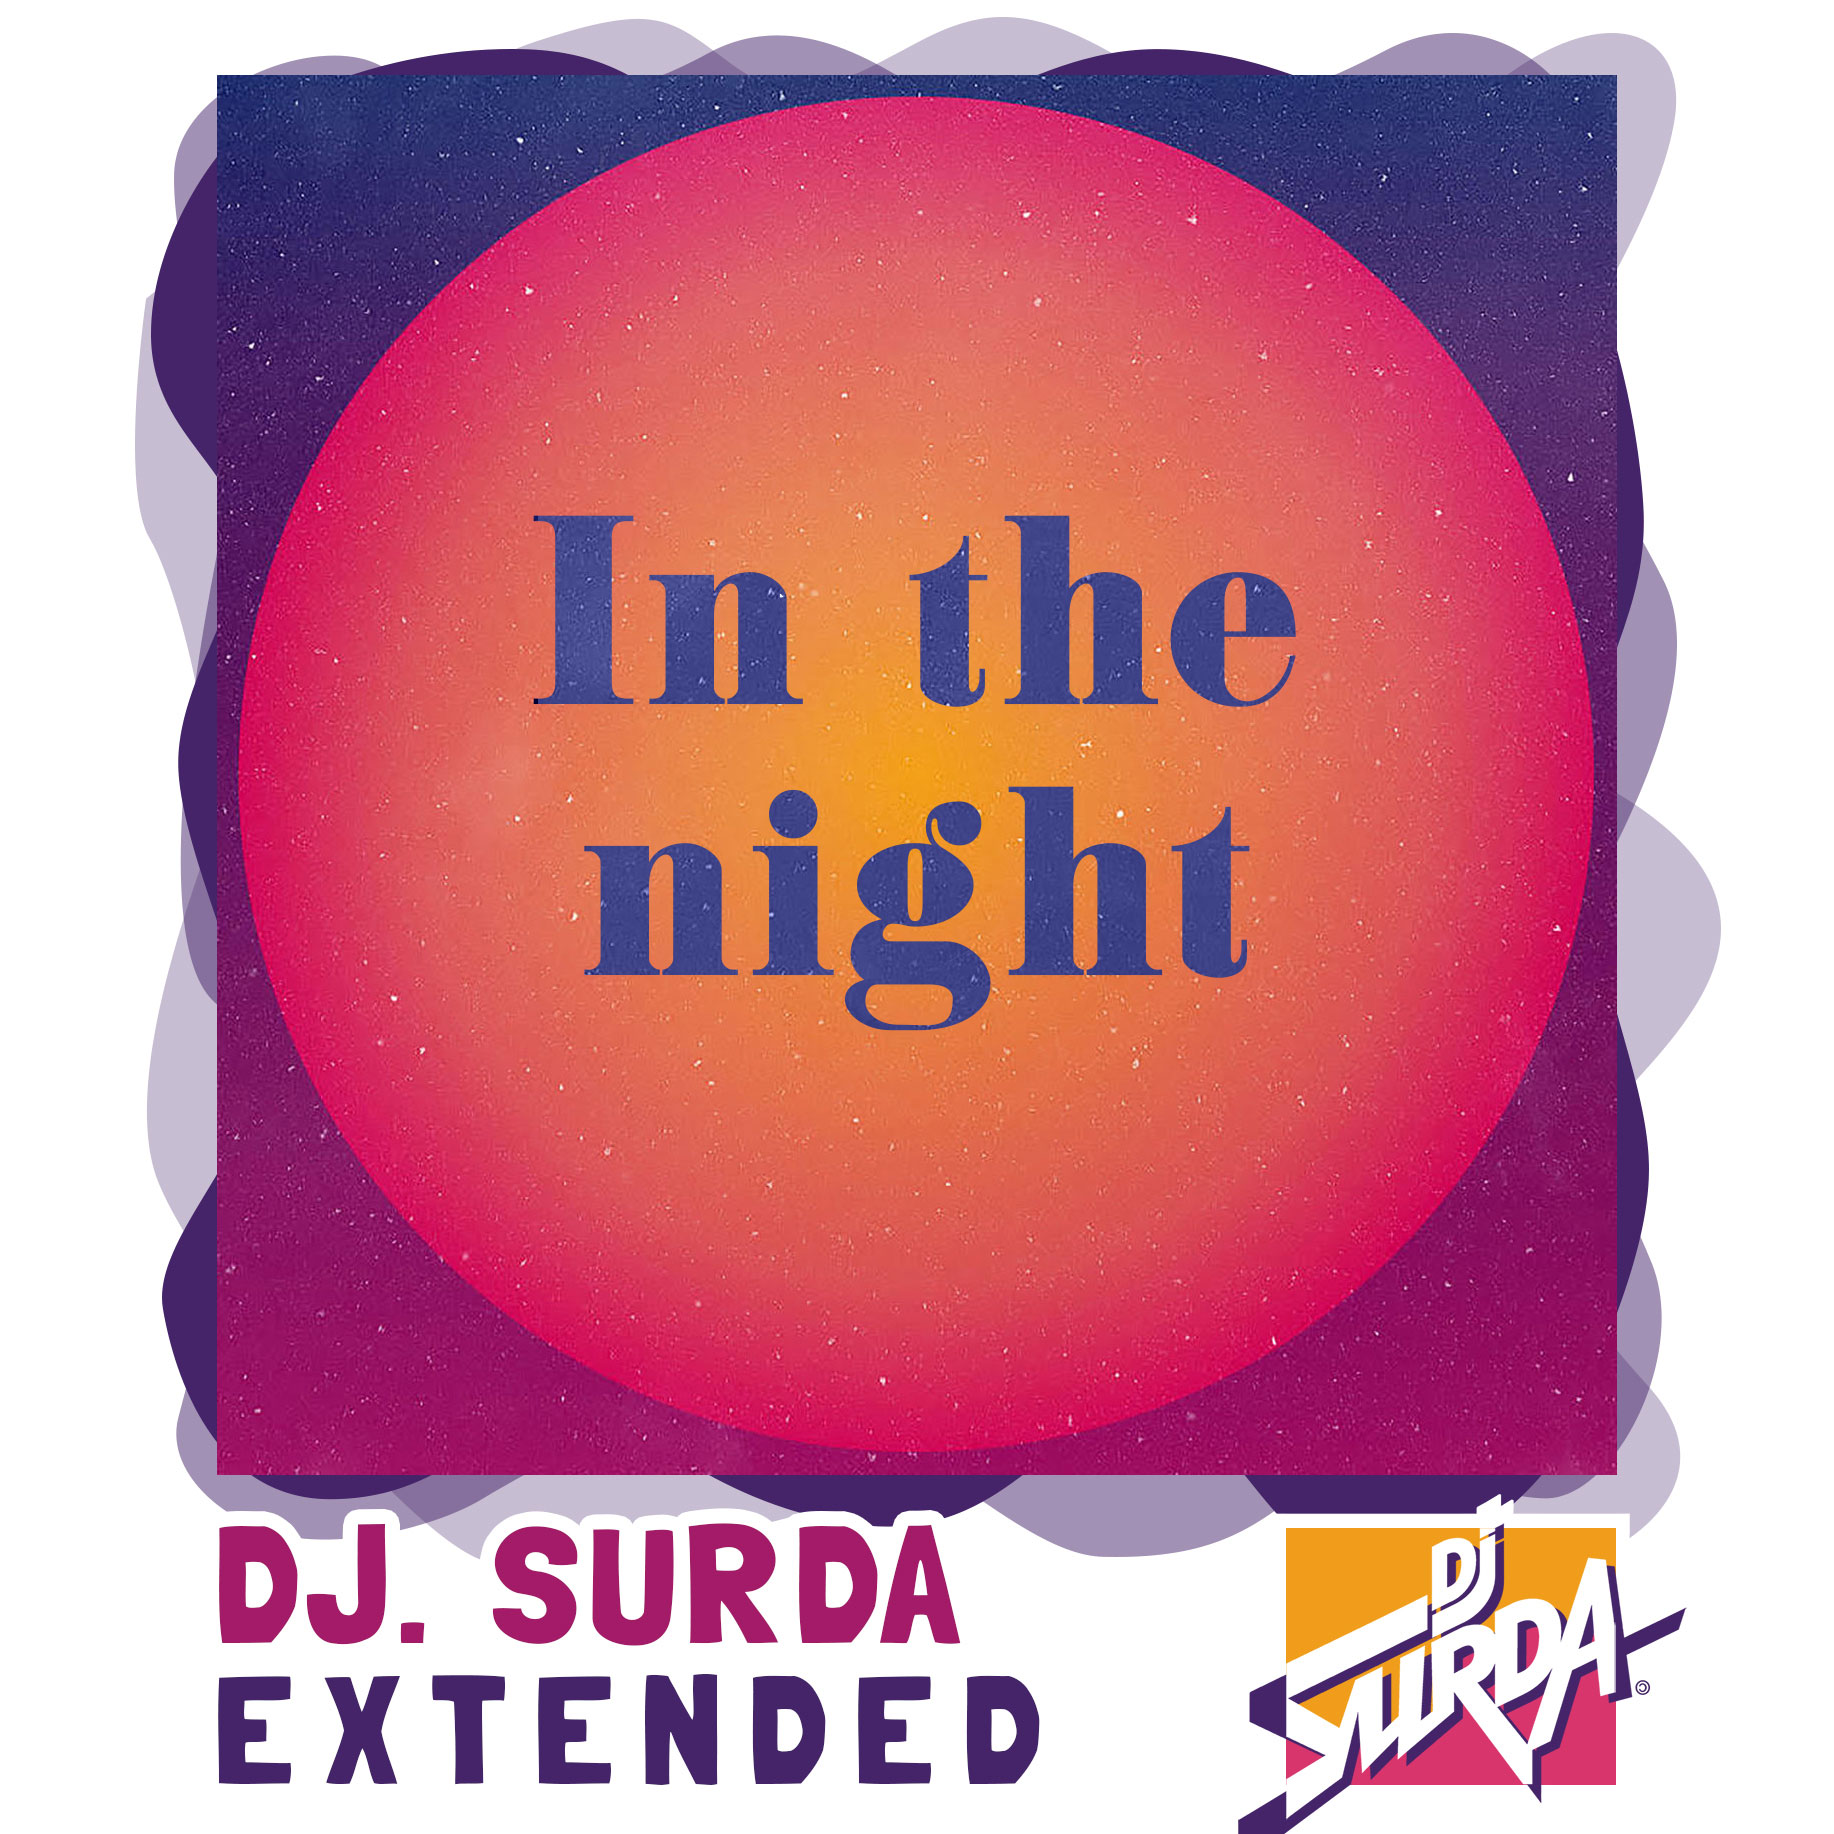 Oques Grasses – In The Night (Dj. Surda Extended Version)